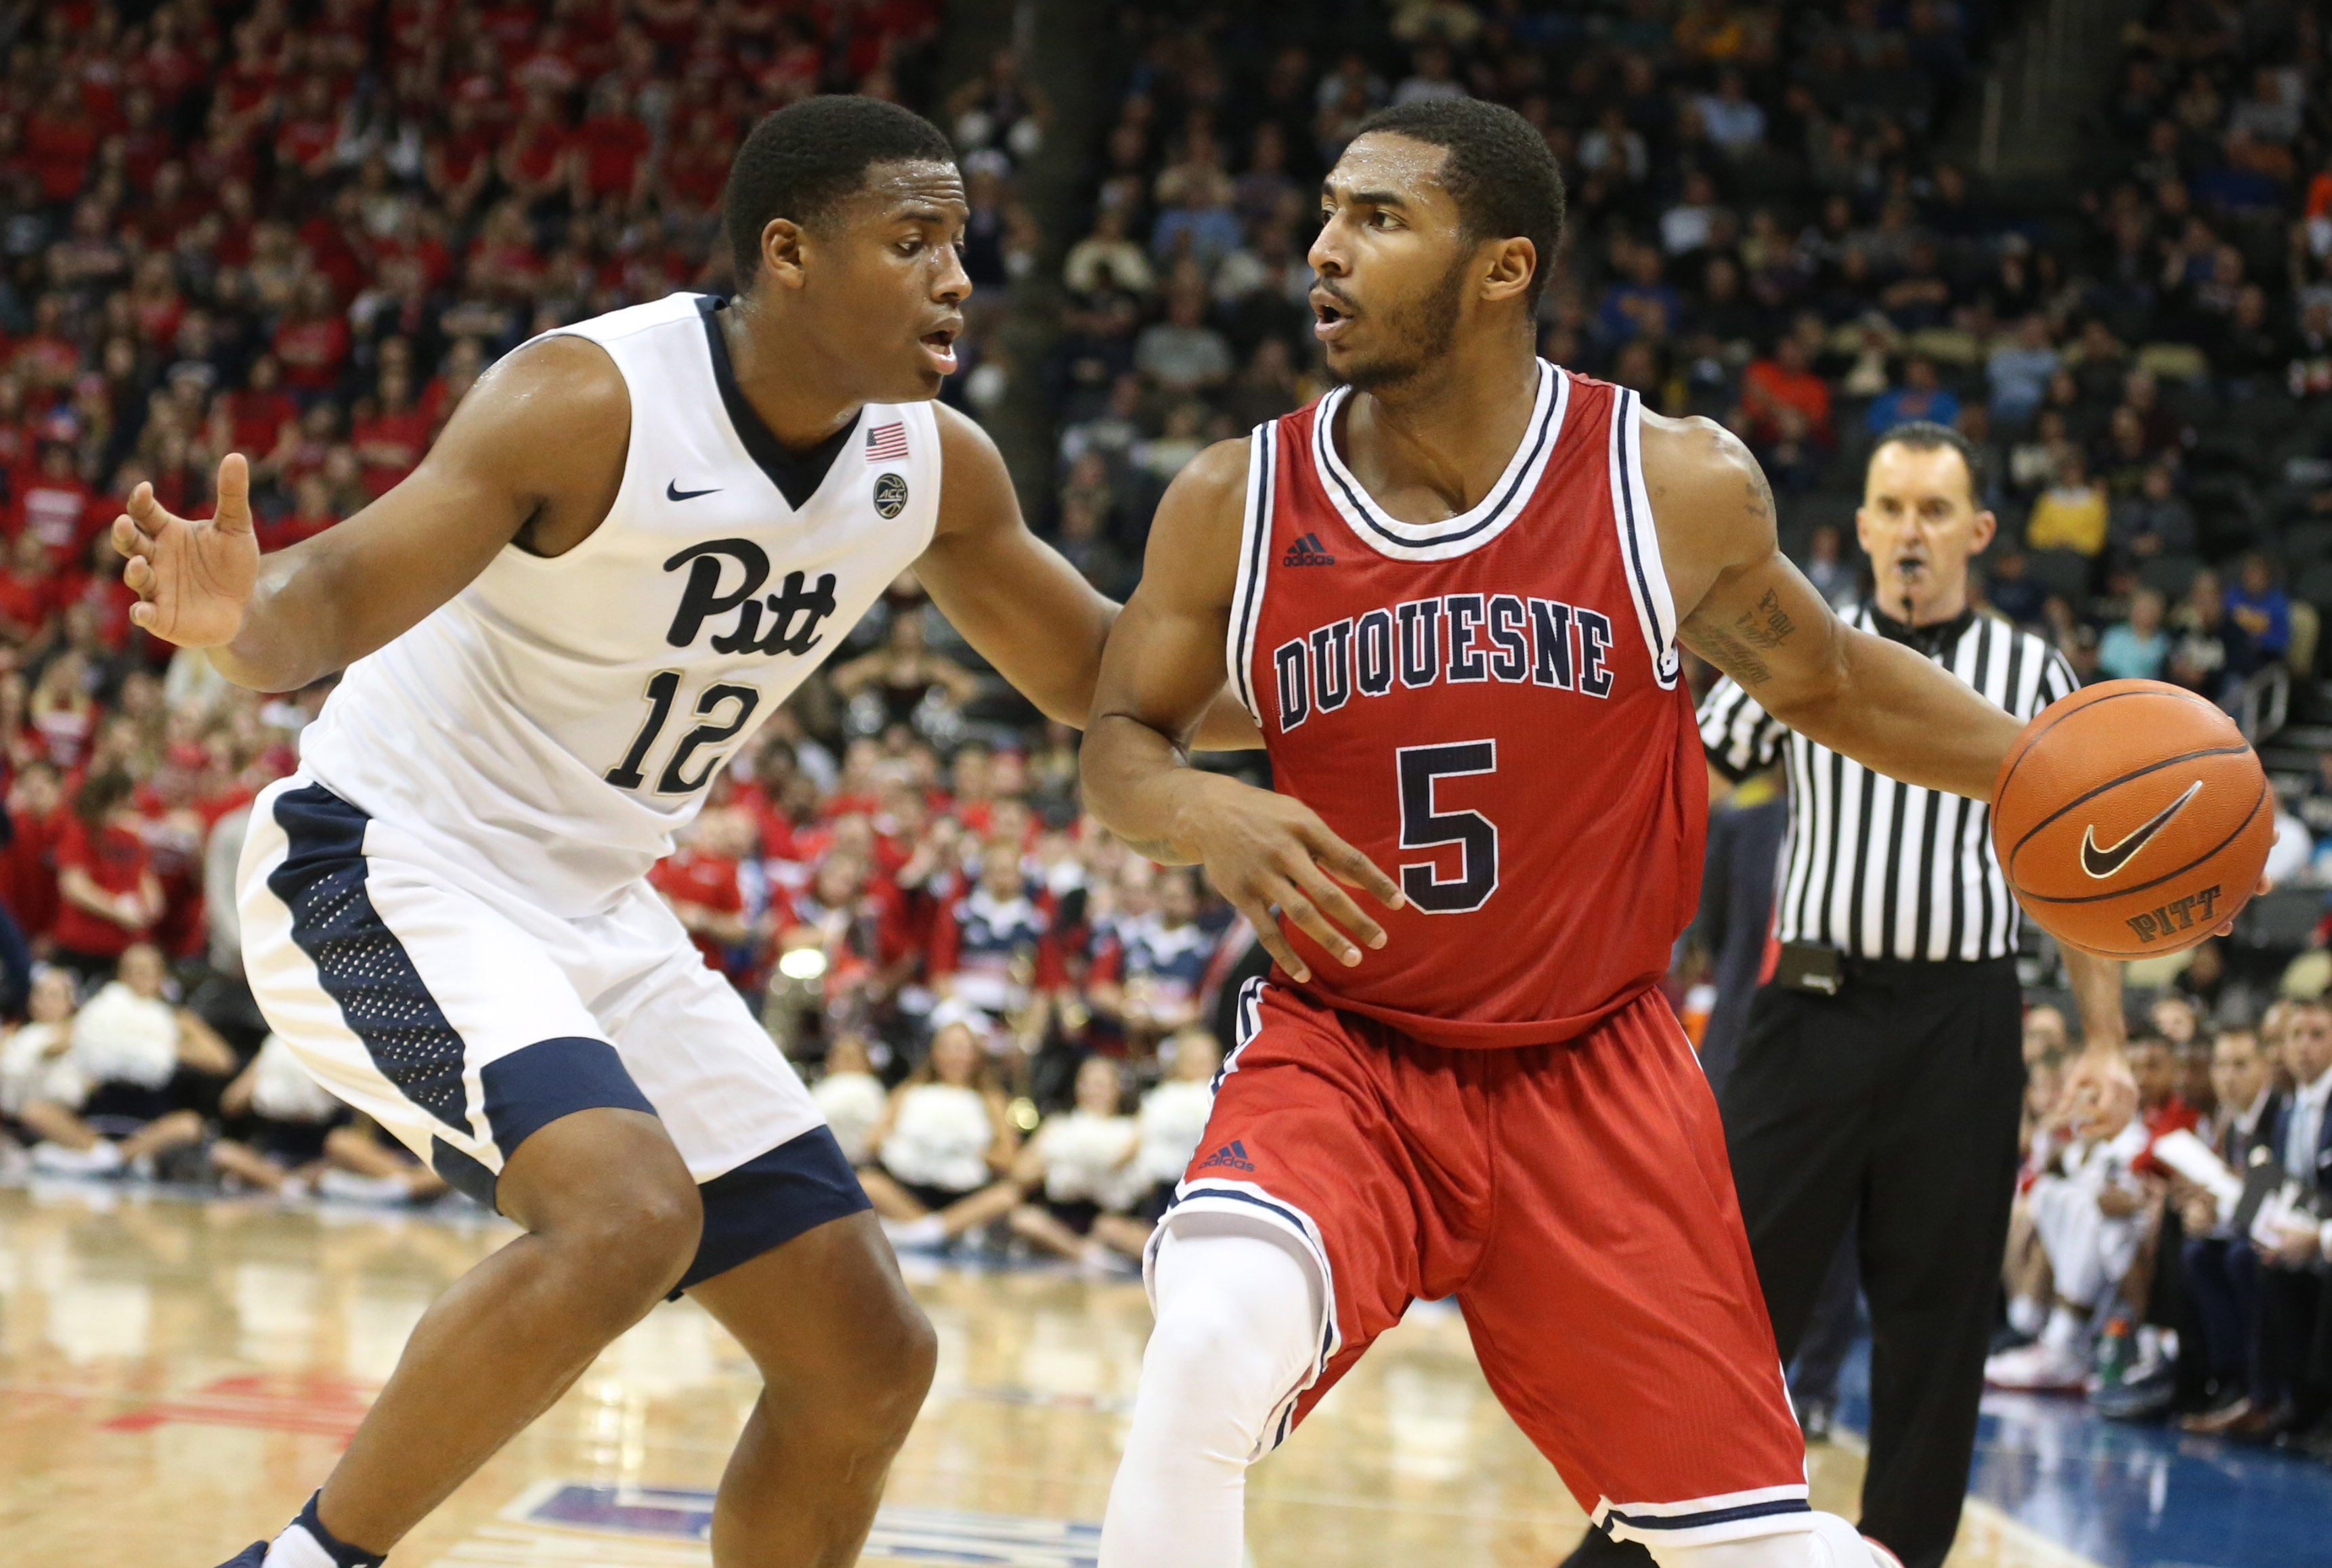 9739926-ncaa-basketball-duquesne-at-pittsburgh